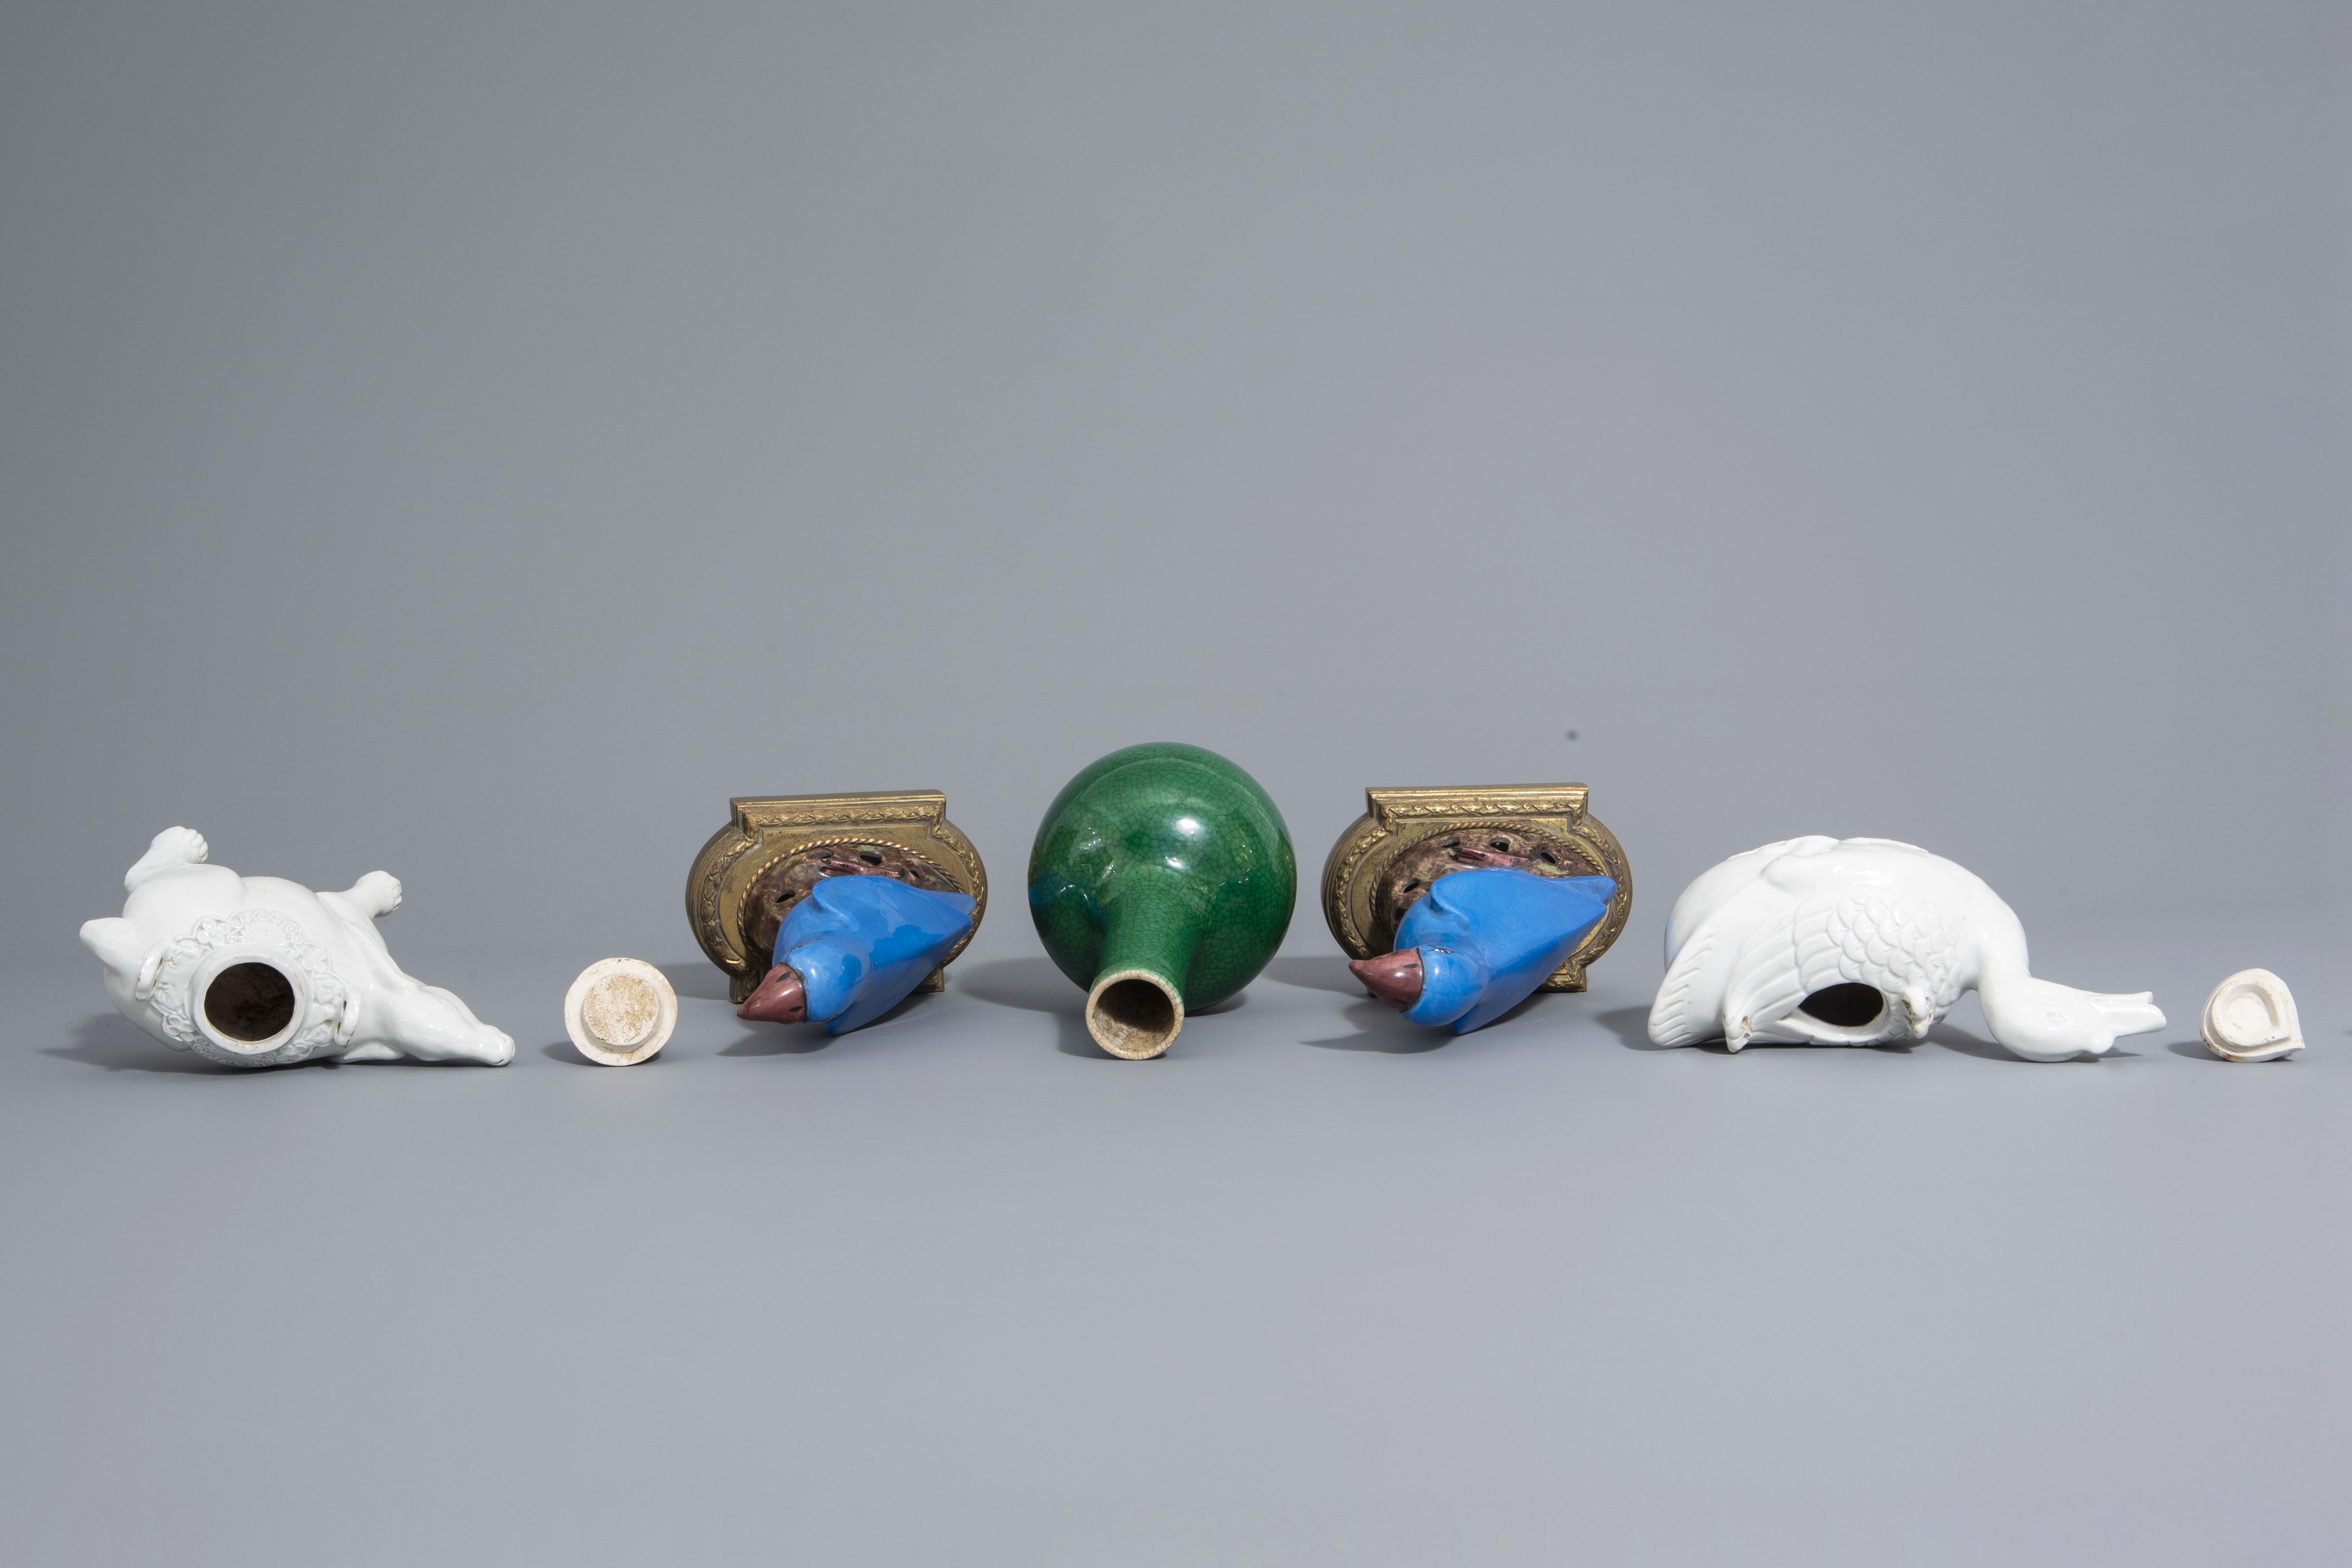 A Chinese monochrome green vase, 2 blanc de Chine teapots & a pair of polychrome birds, 19th/20th C - Image 6 of 7